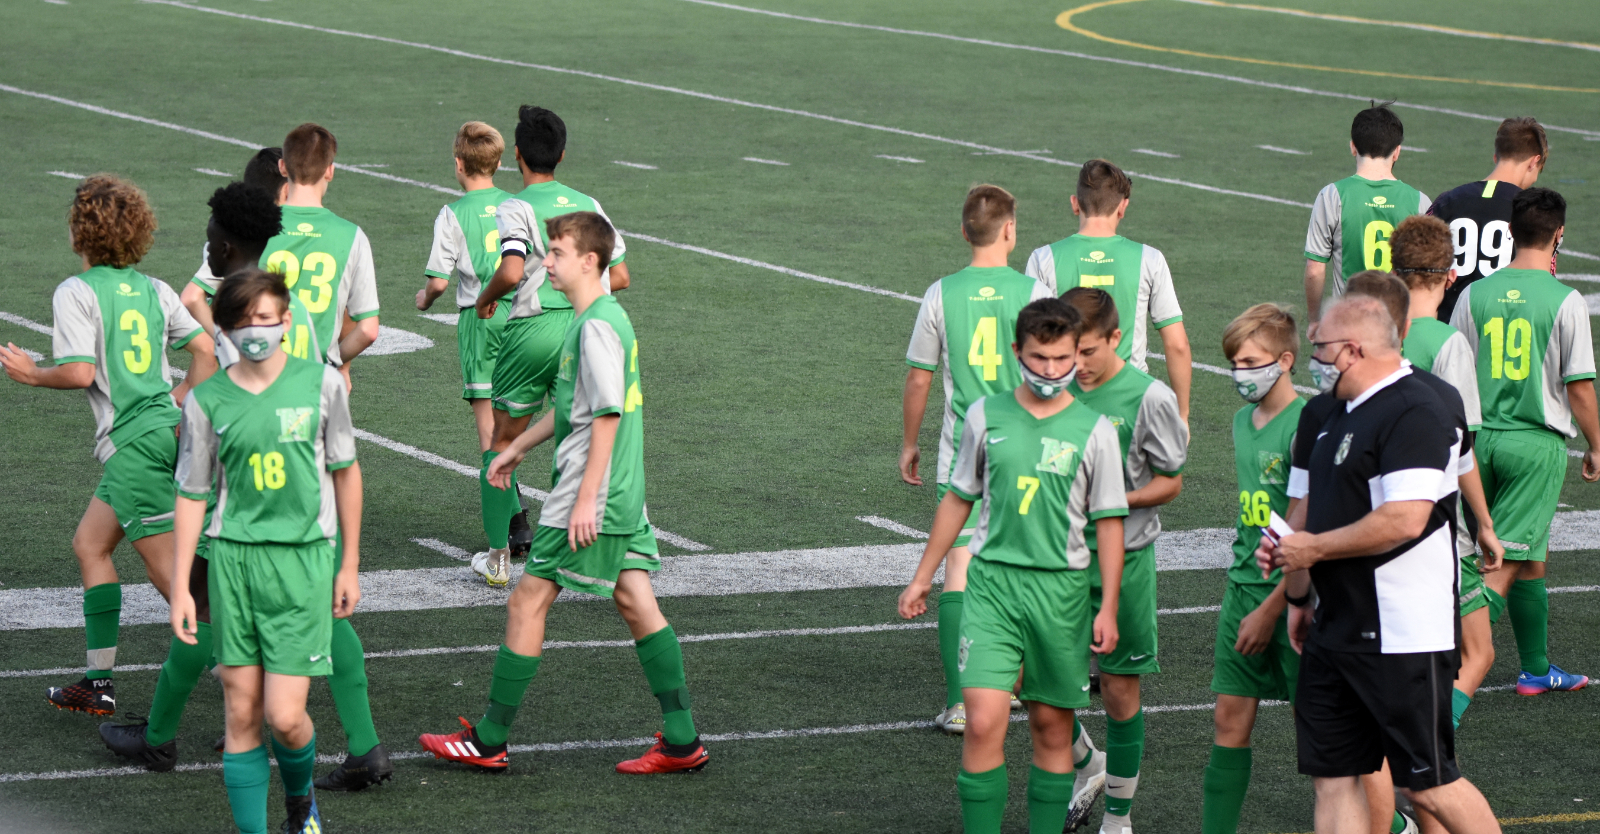 Boys JV-A Soccer v. Kettering Fairmont at Home 09/17/2020 Photo Gallery